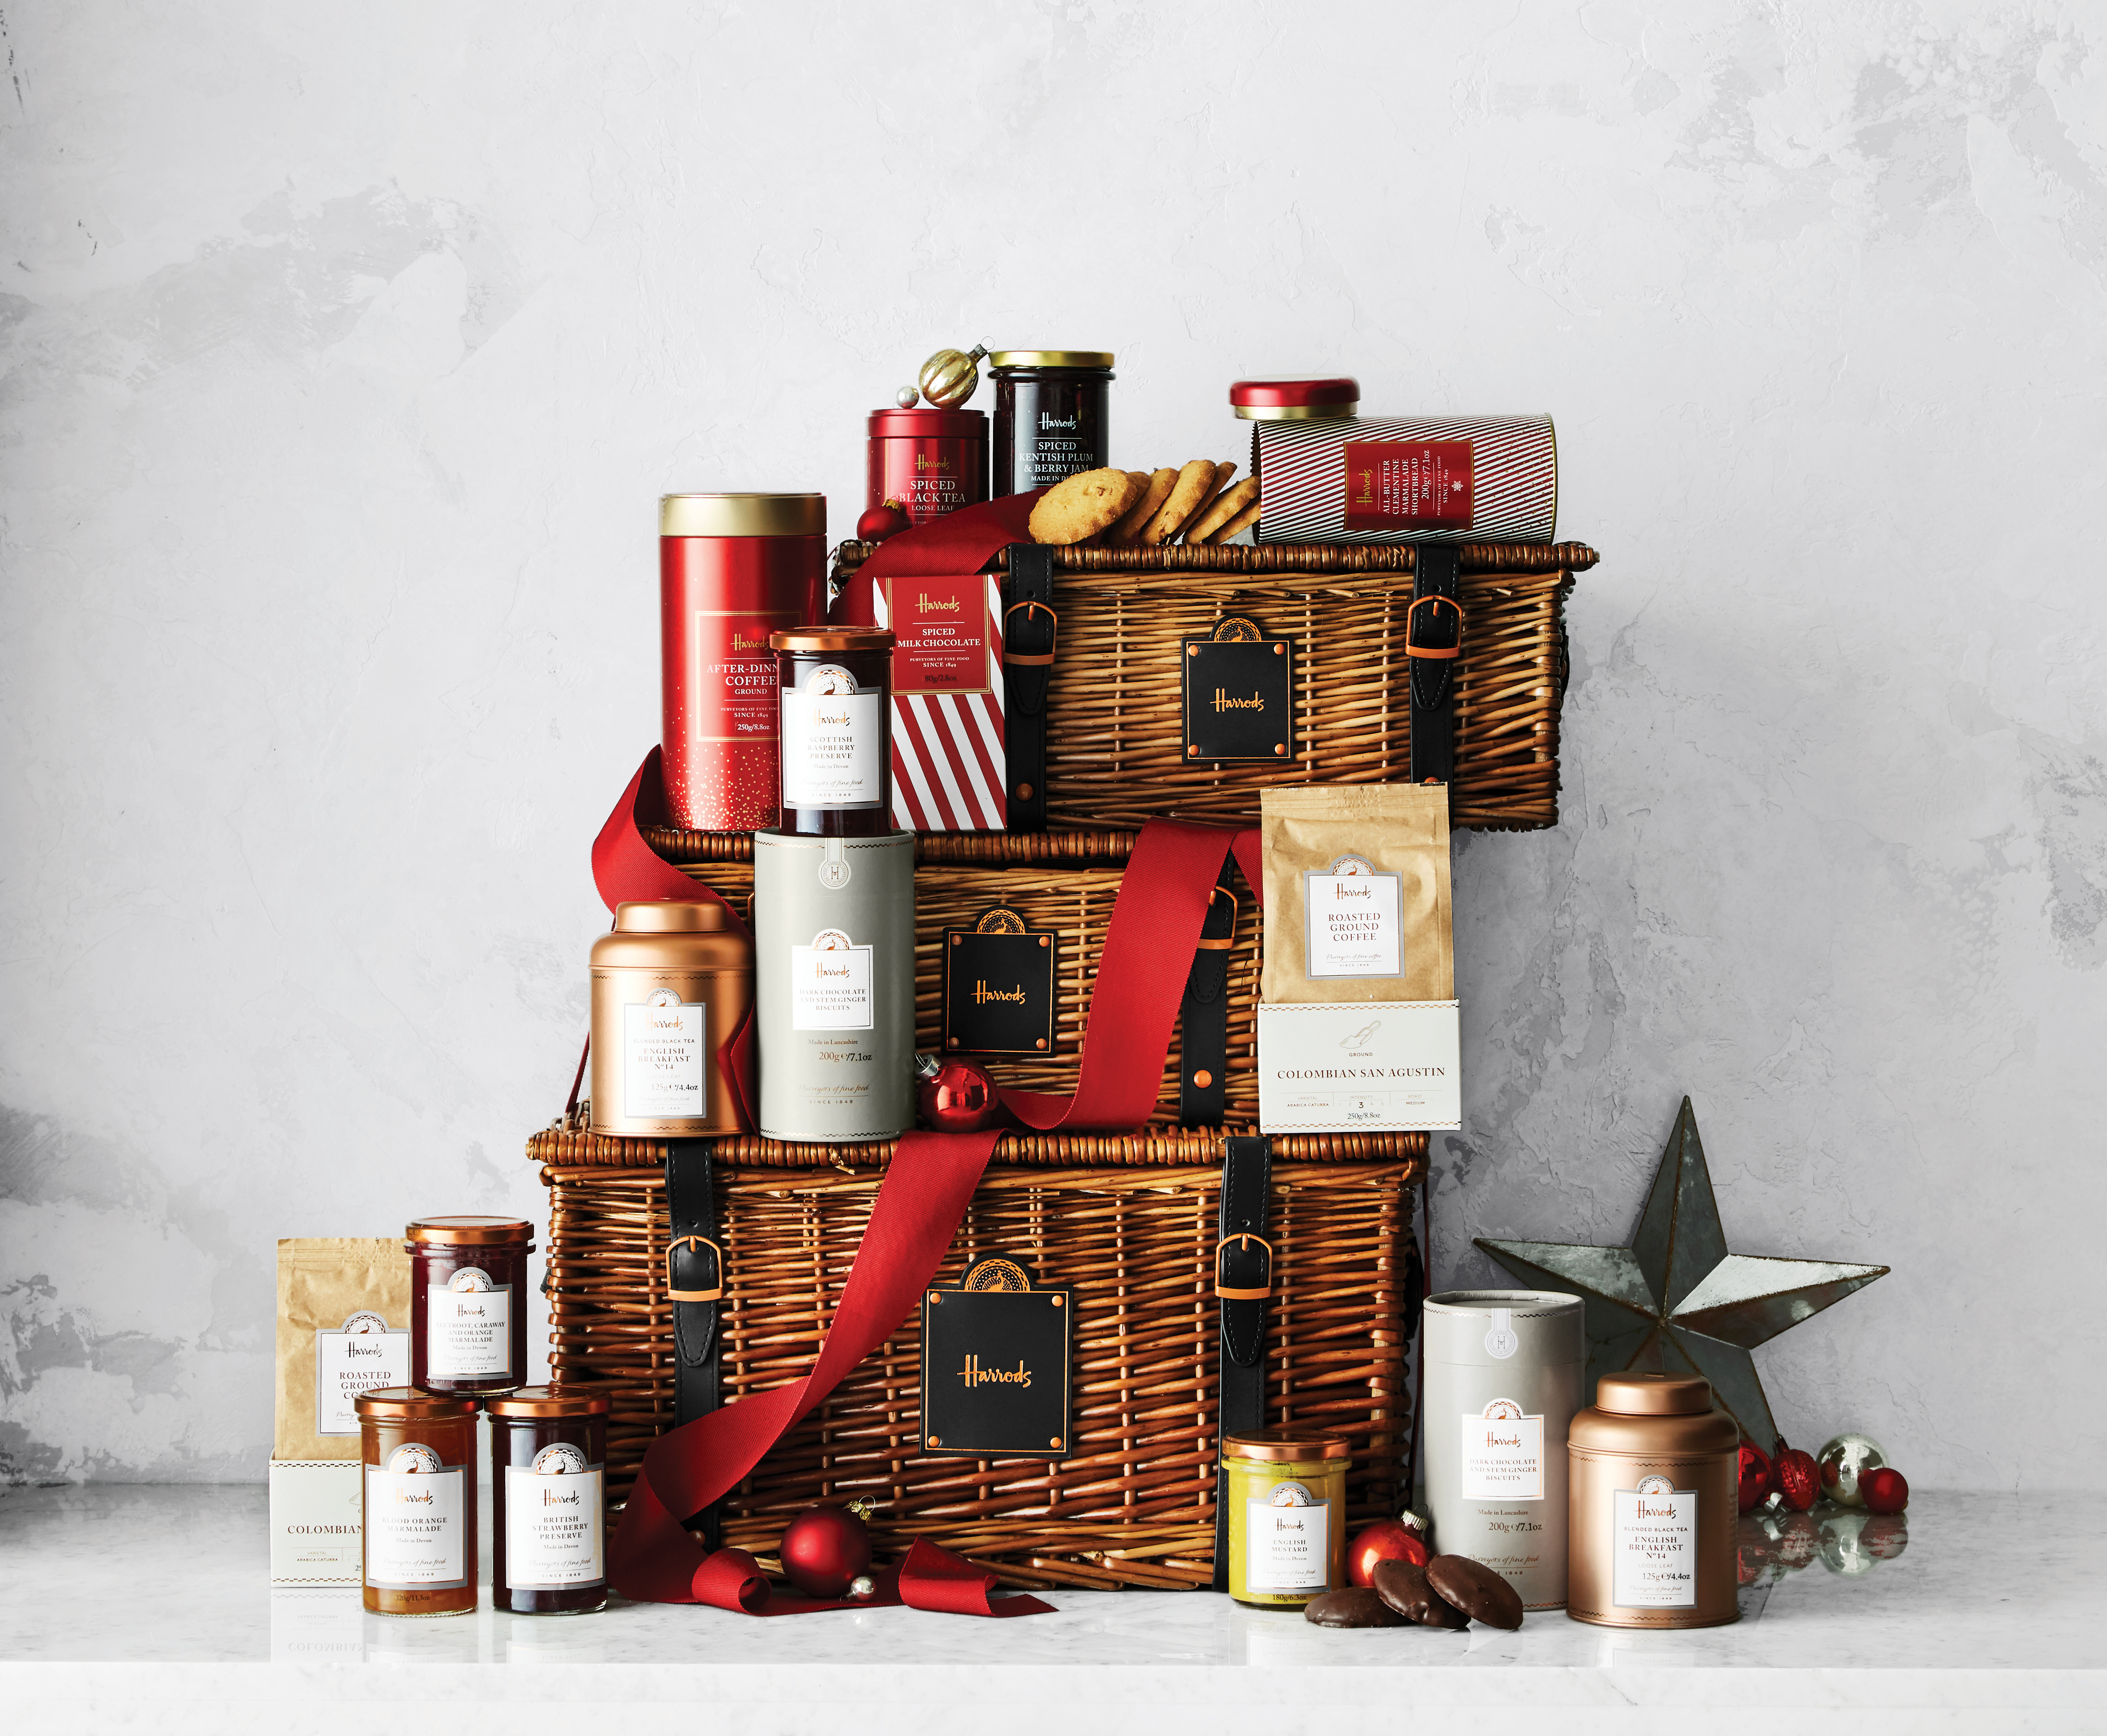 Harrods Signature Hampers Now Available in the U.S. on www.WilliamsSonoma.com-Harrods (Courtesy of Williams Sonoma)